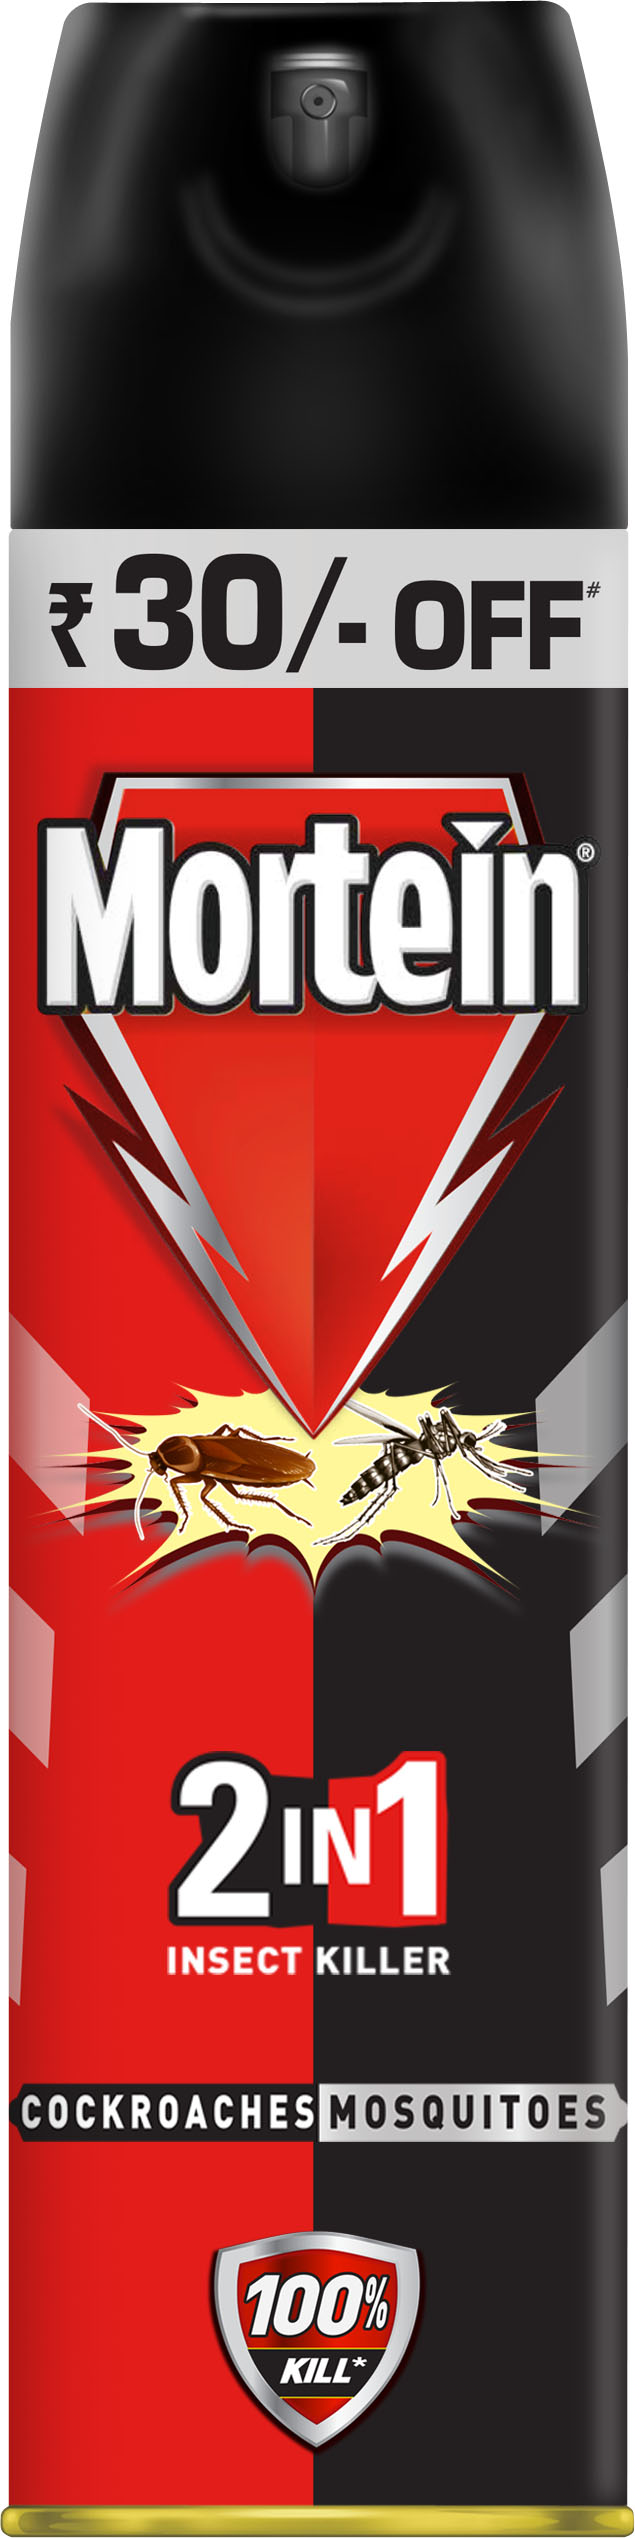 Mortein 2in1 425ml